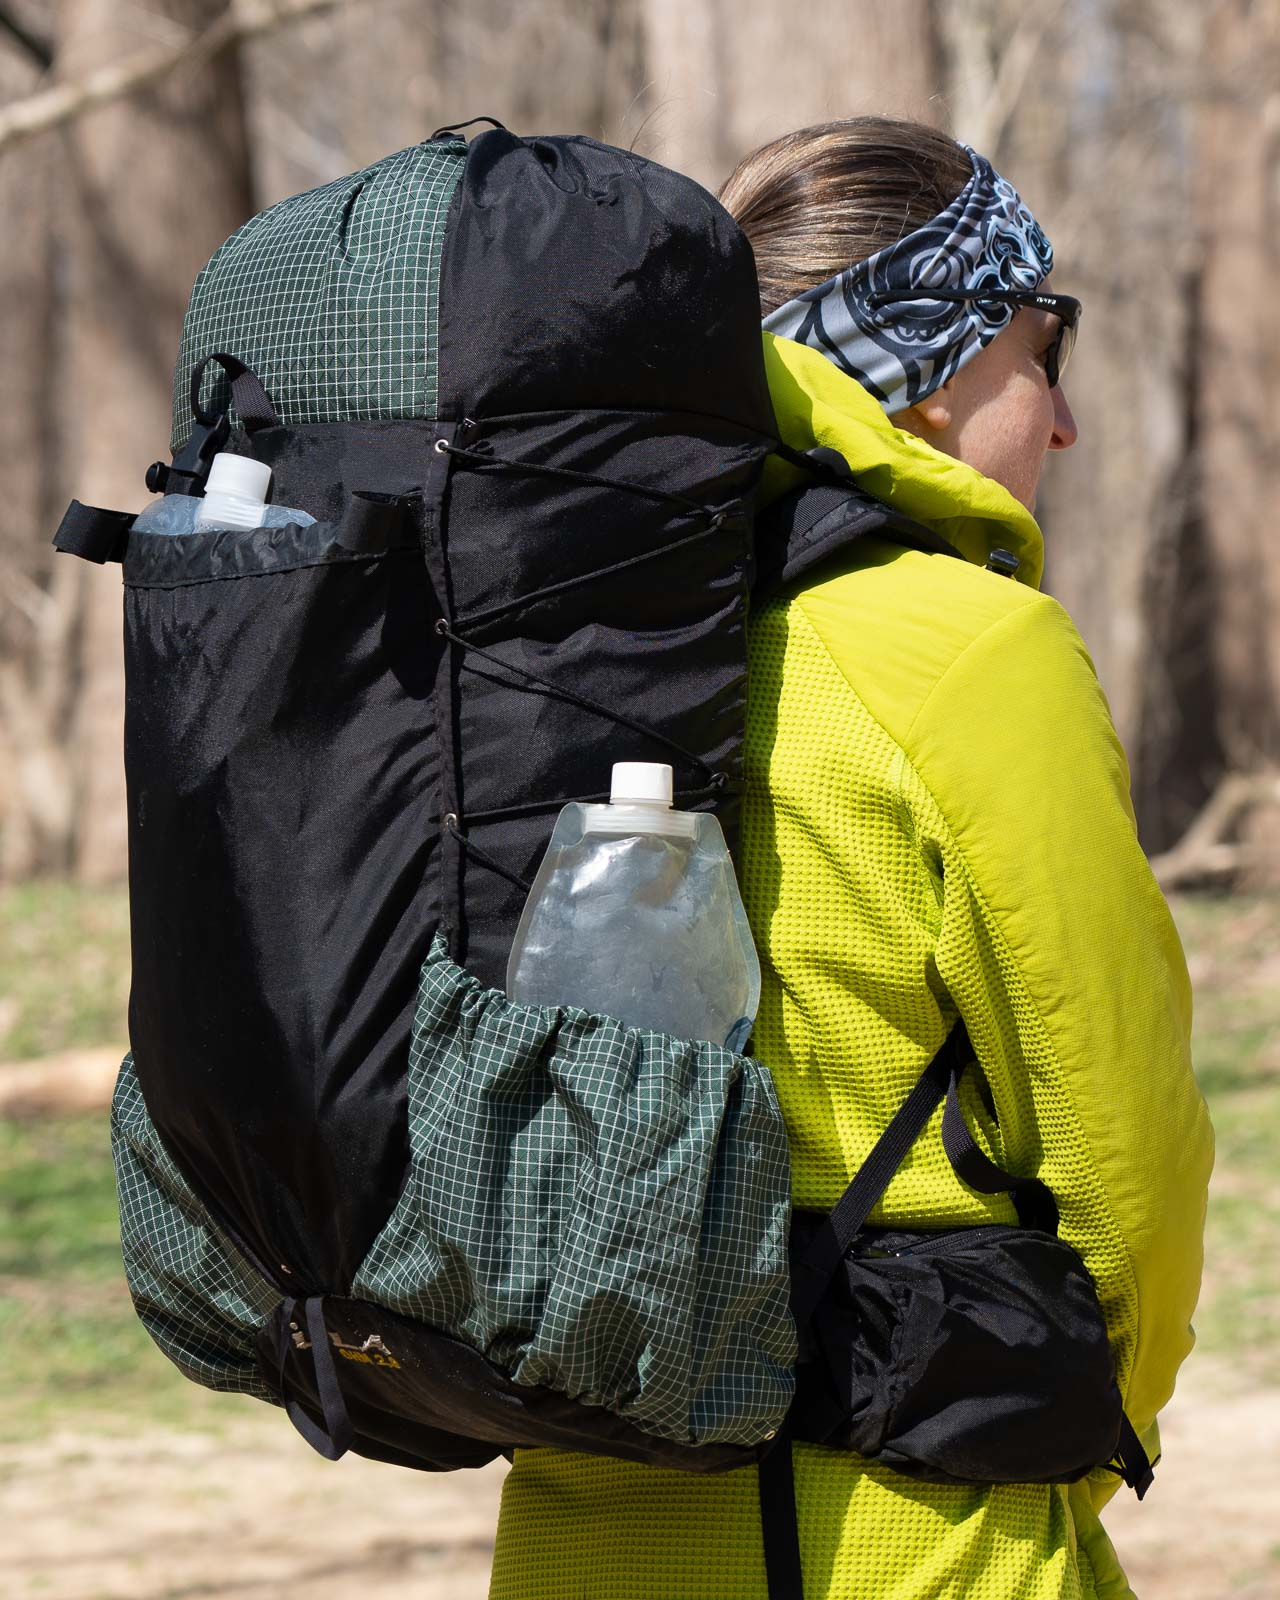 d743c4db049 2019 Best Backpacks for Backpacking and Hiking - Adventure Alan